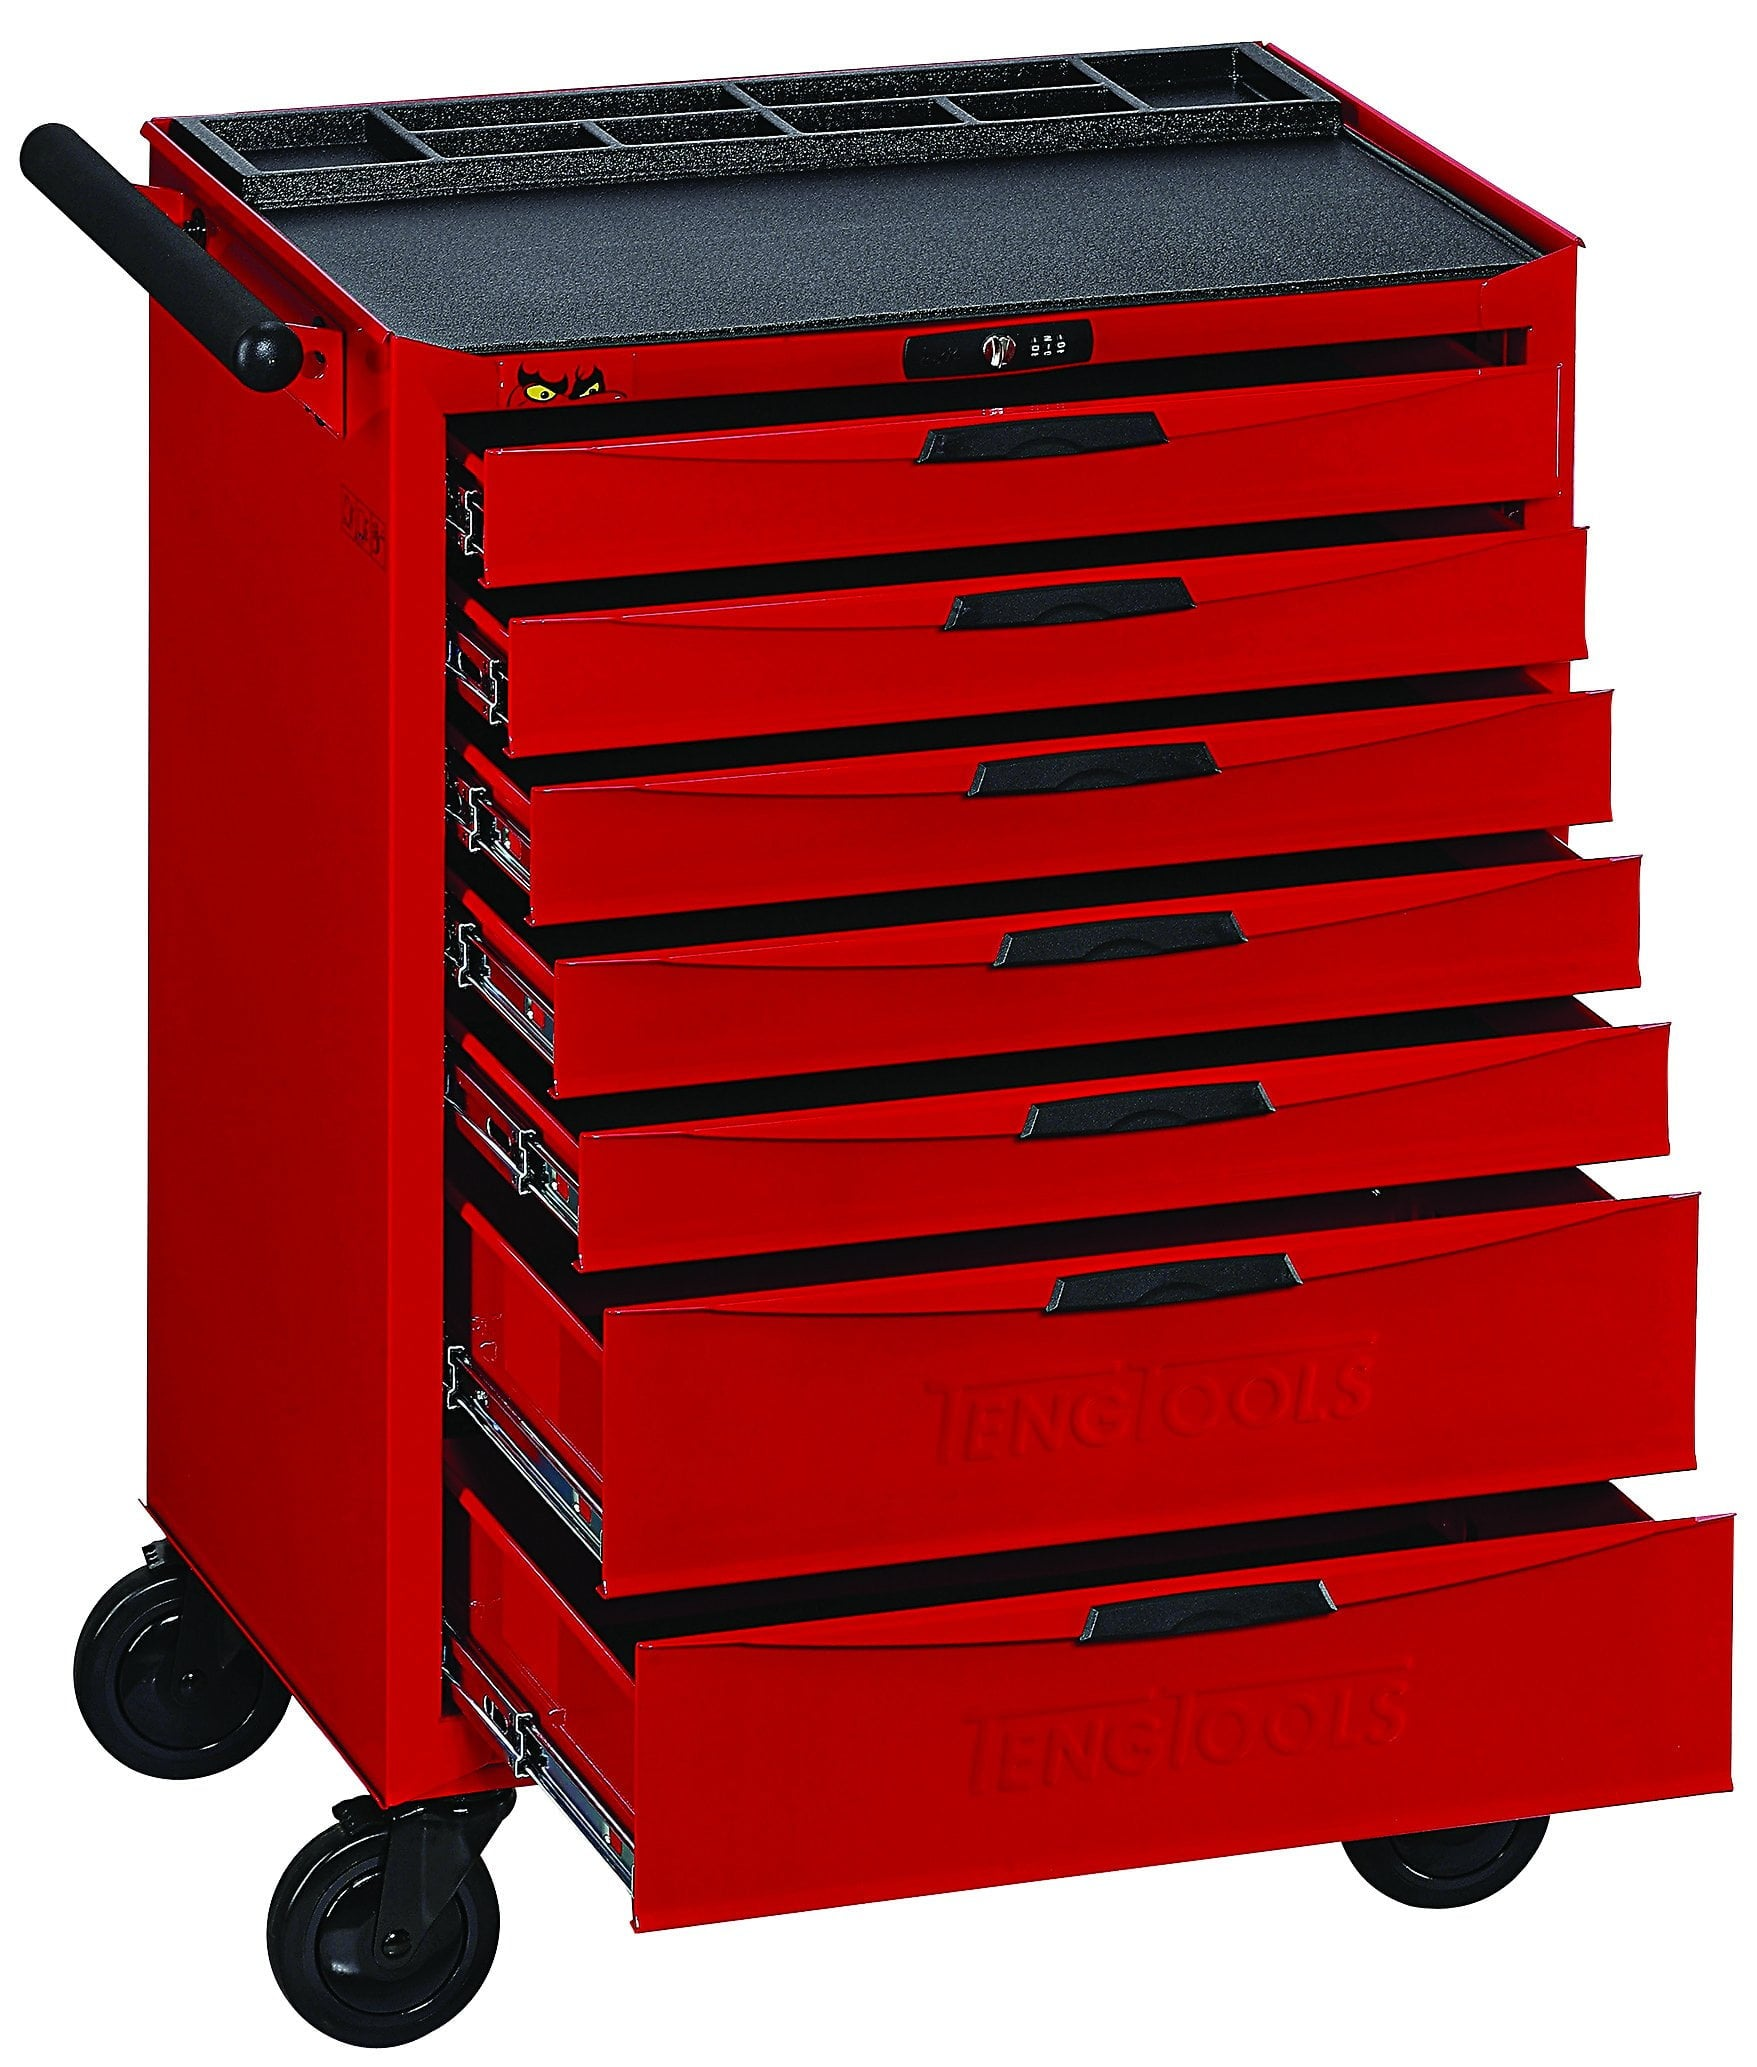 Teng Tools 174 Piece Complete Mixed EVA Foam 7 Drawer Roller Cabinet Hand Tool Kit - TCMME174